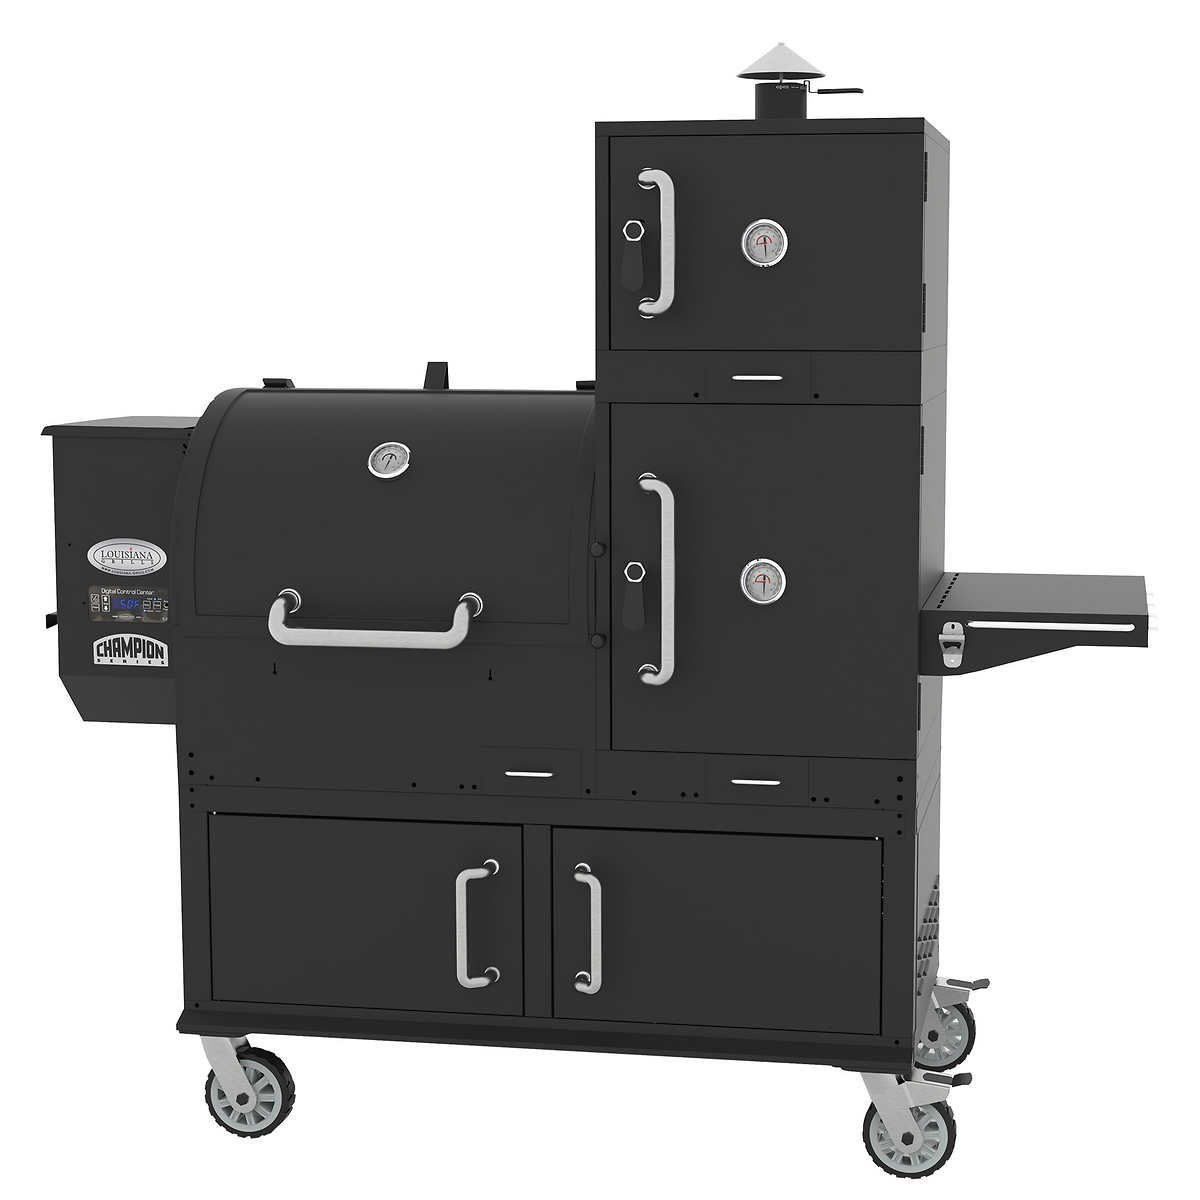 Louisiana Grills Champion Wood Pellet Smoker Grill Review